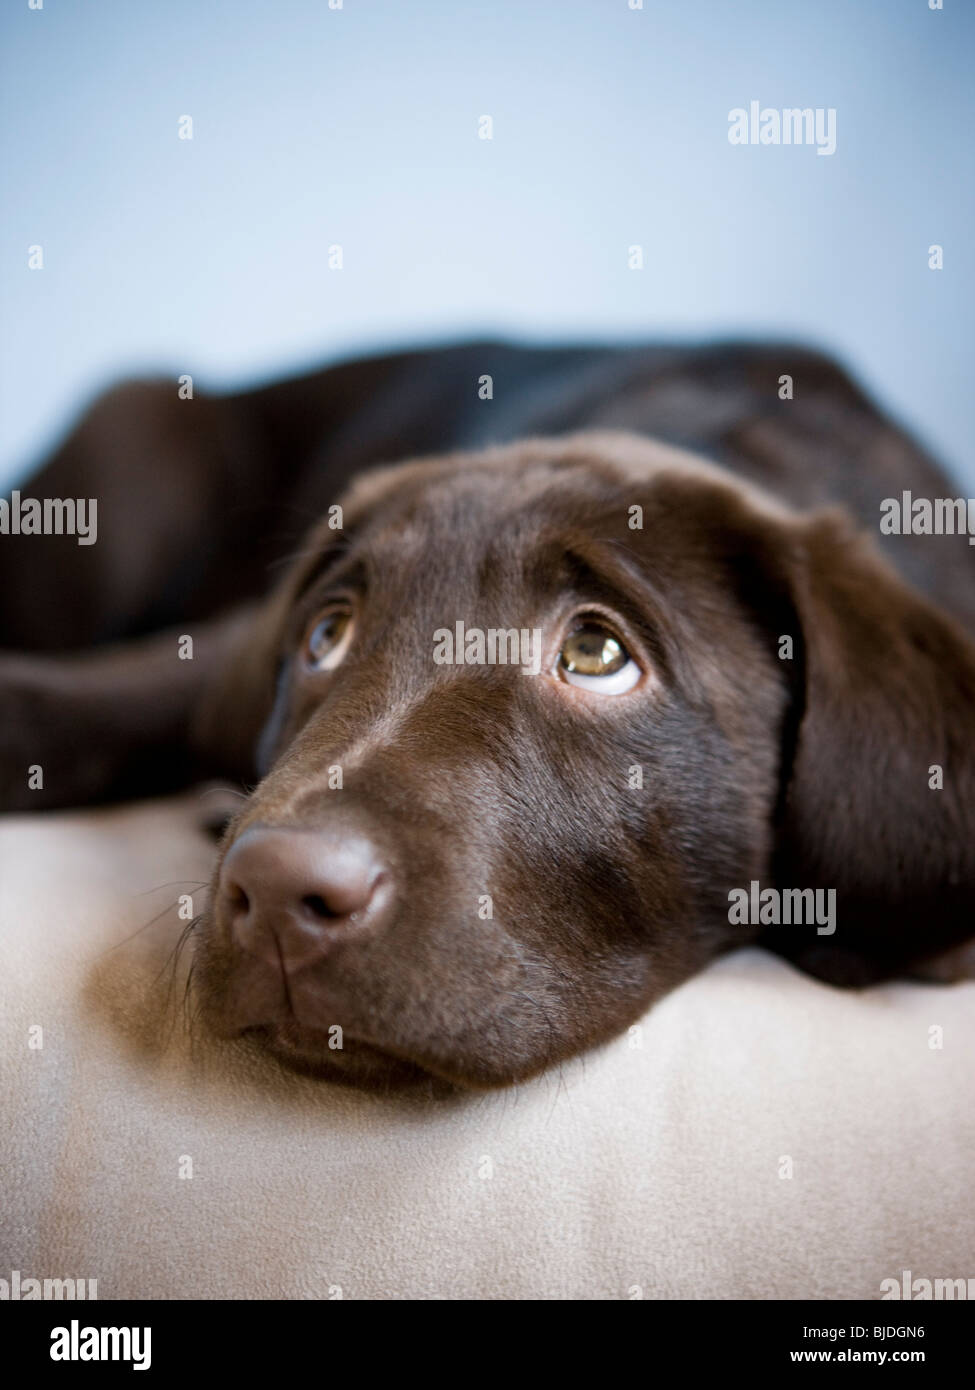 brown puppy - Stock Image